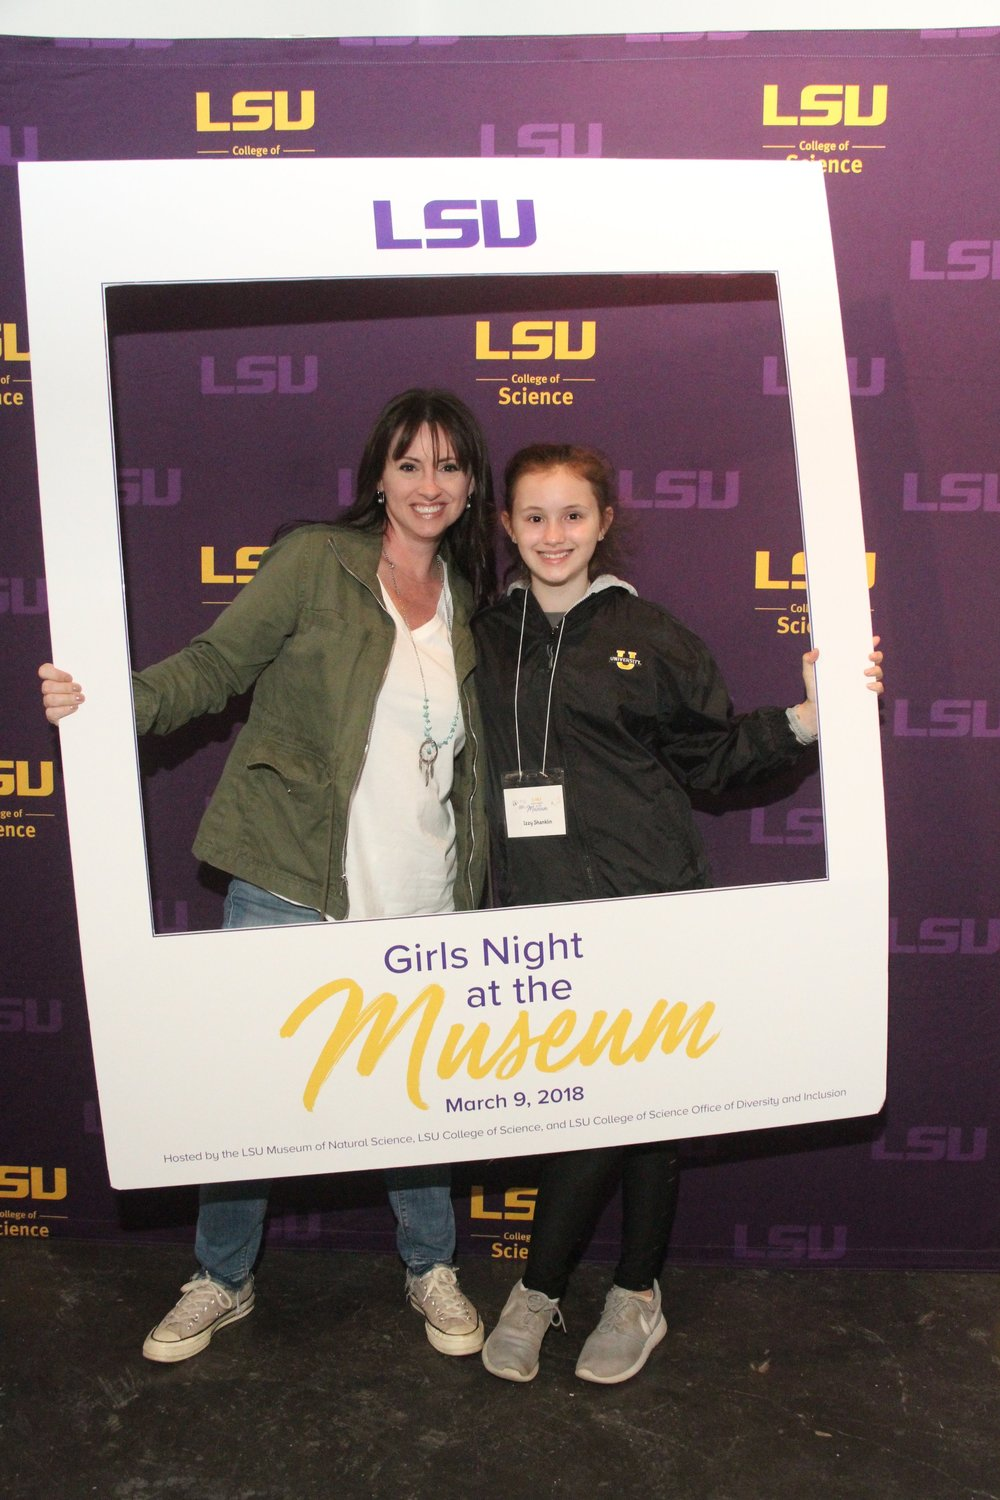 Izzy and her mom commemorate the night at the Girls Night at the Museum photo booth. Say Science!